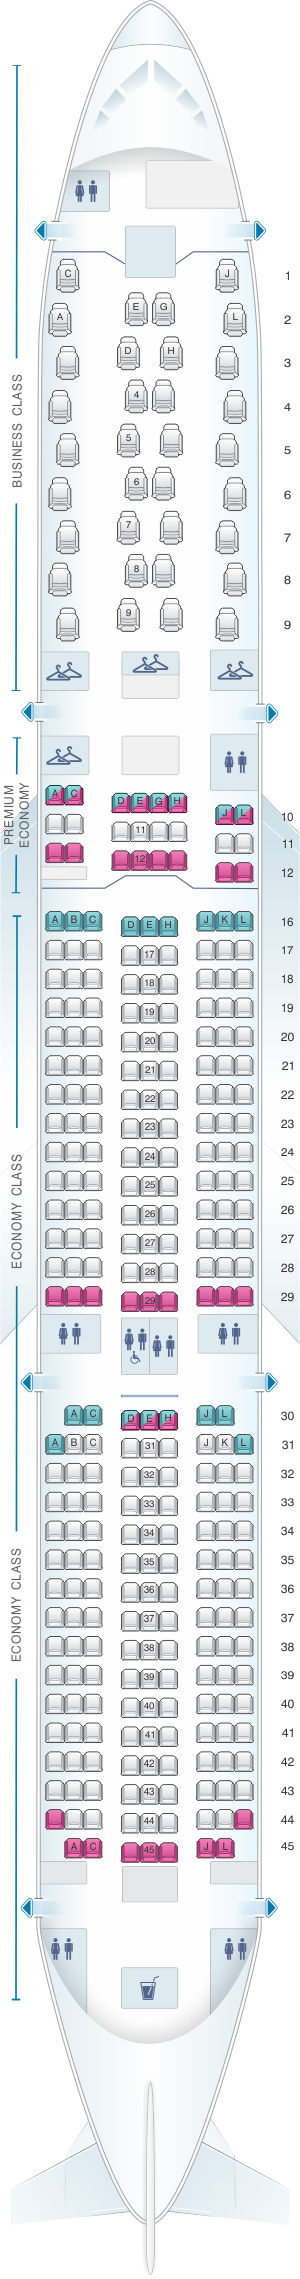 Seat map for Air France Airbus A350 900